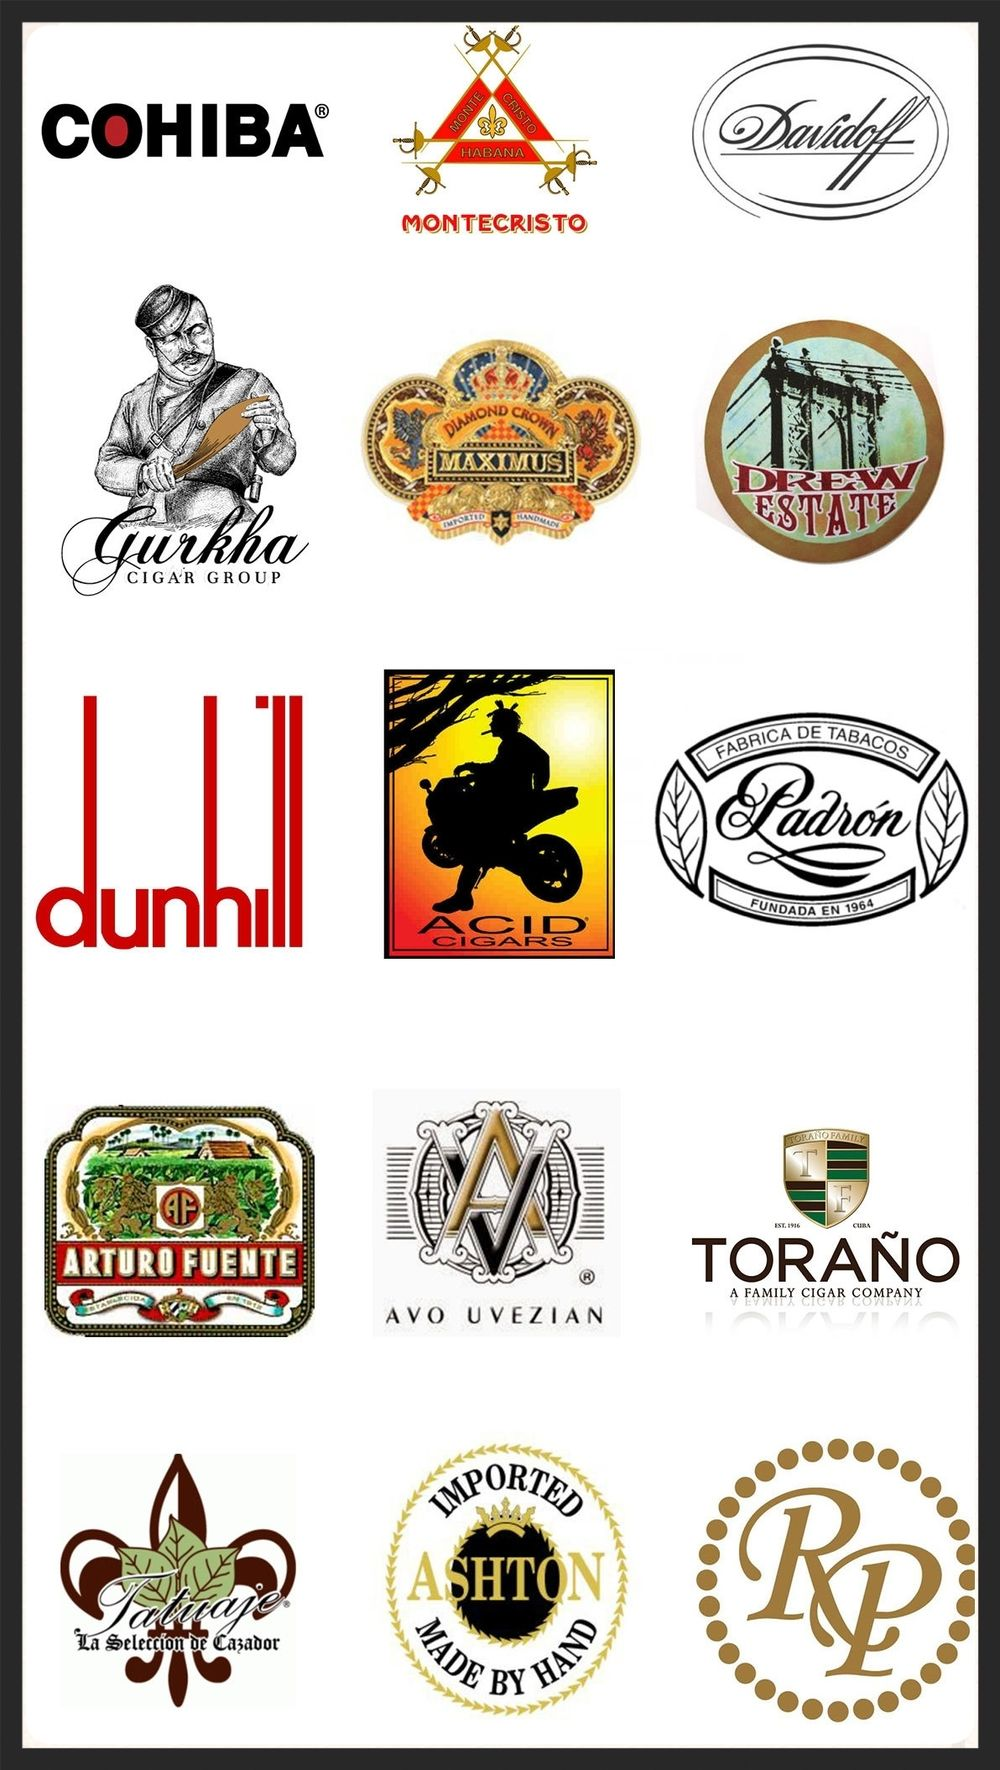 cigar distributor The nation's largest distributor of cigars. Specializing in casinos, hospitality, resorts & small businesses with a proprietary system to grow your cigar sales http://www.mdcwholesalecigars.com/